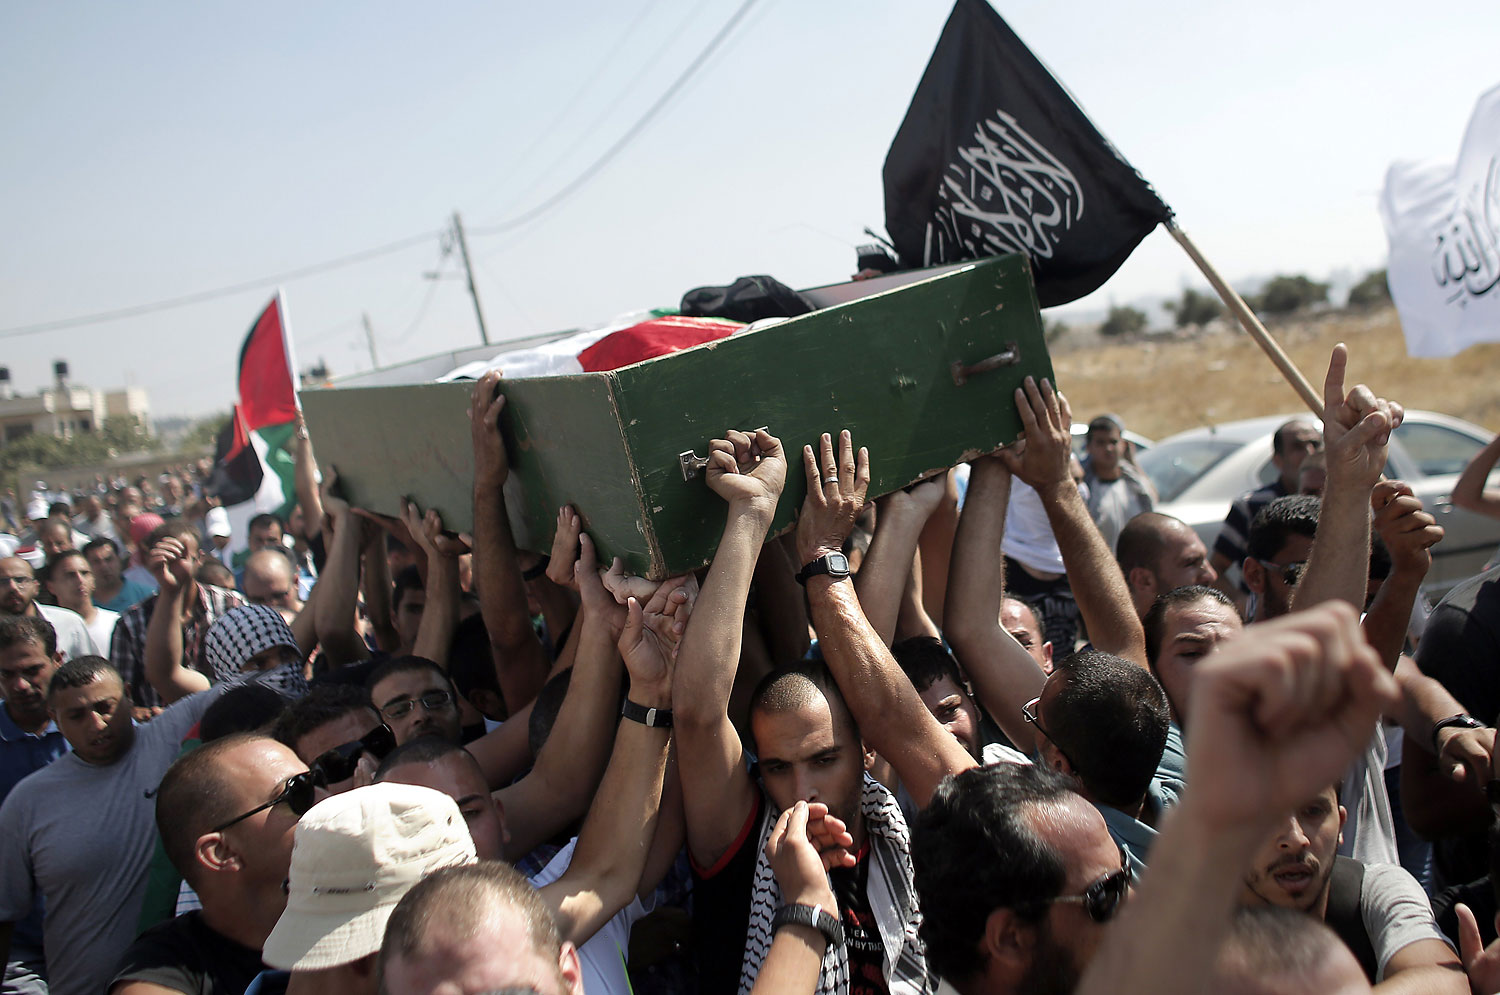 Relatives and friends of Mohammed Abu Khder, 16, carry his body to a mosque during his funeral in Shuafat, in Israeli annexed East Jerusalem on July 4, 2014.